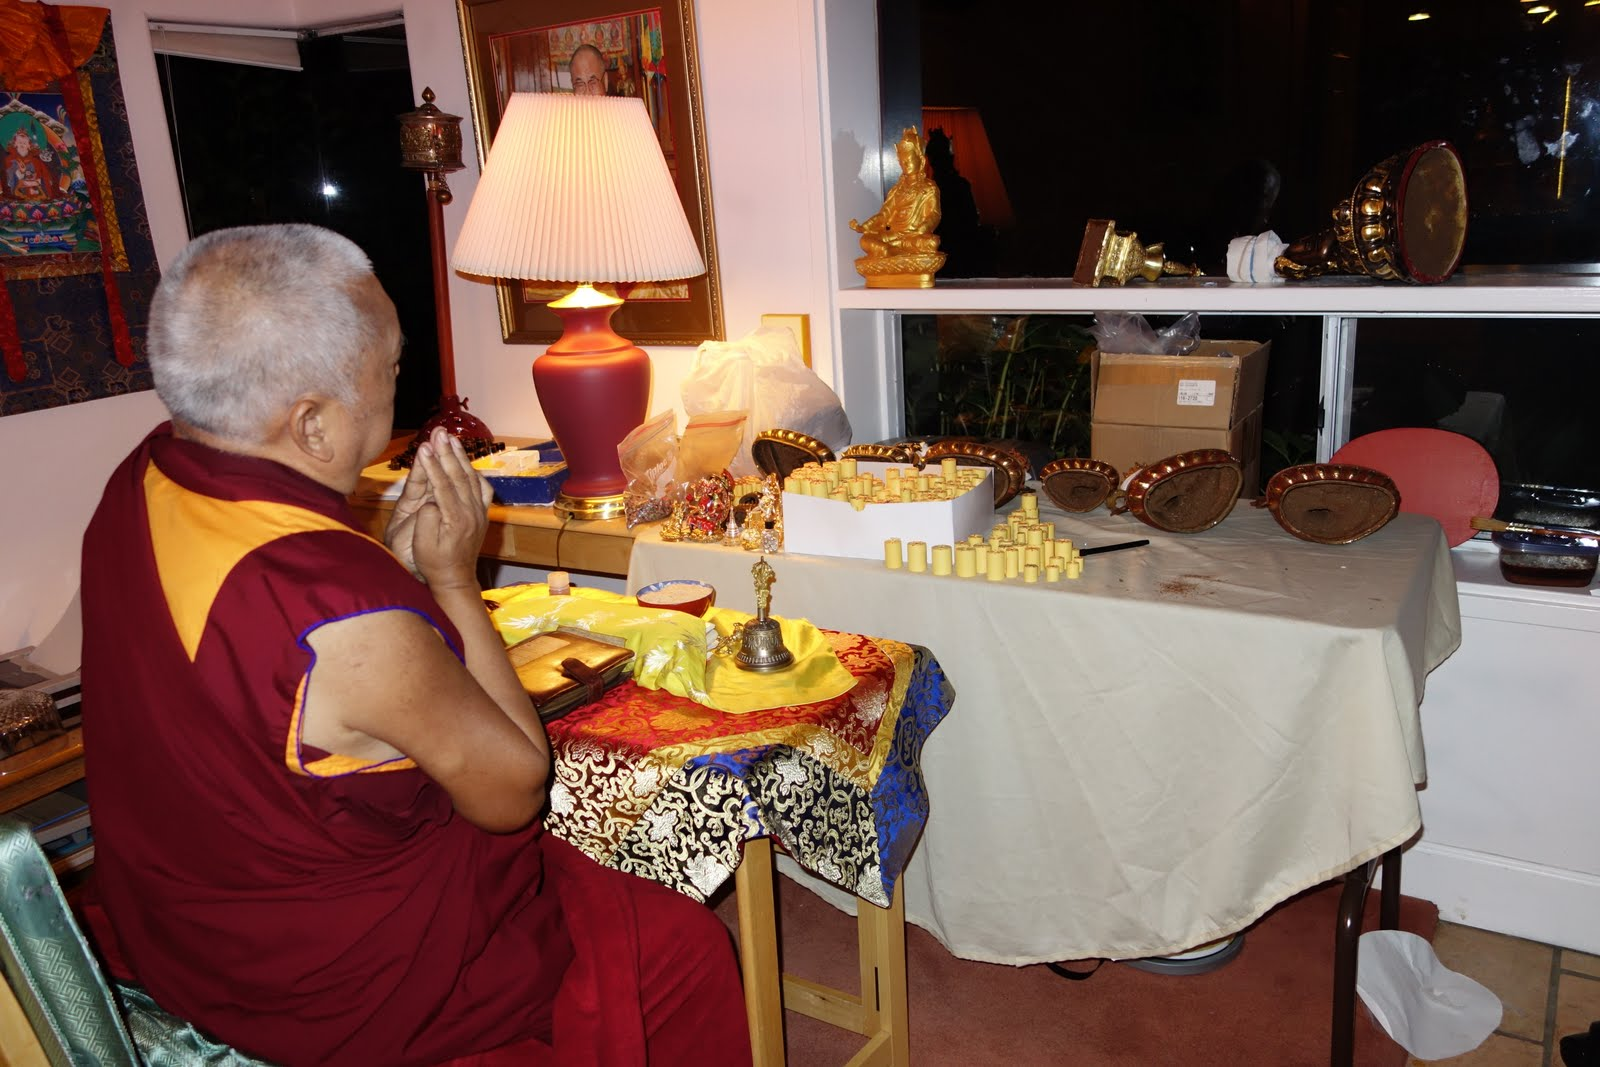 Rinpoche blessing mantras to go into statues just after lunch (which happened at 7: 30pm) Dinner will be around midnight or after! Oct 21, 2013. Photo by Ven. Roger Kunsang.